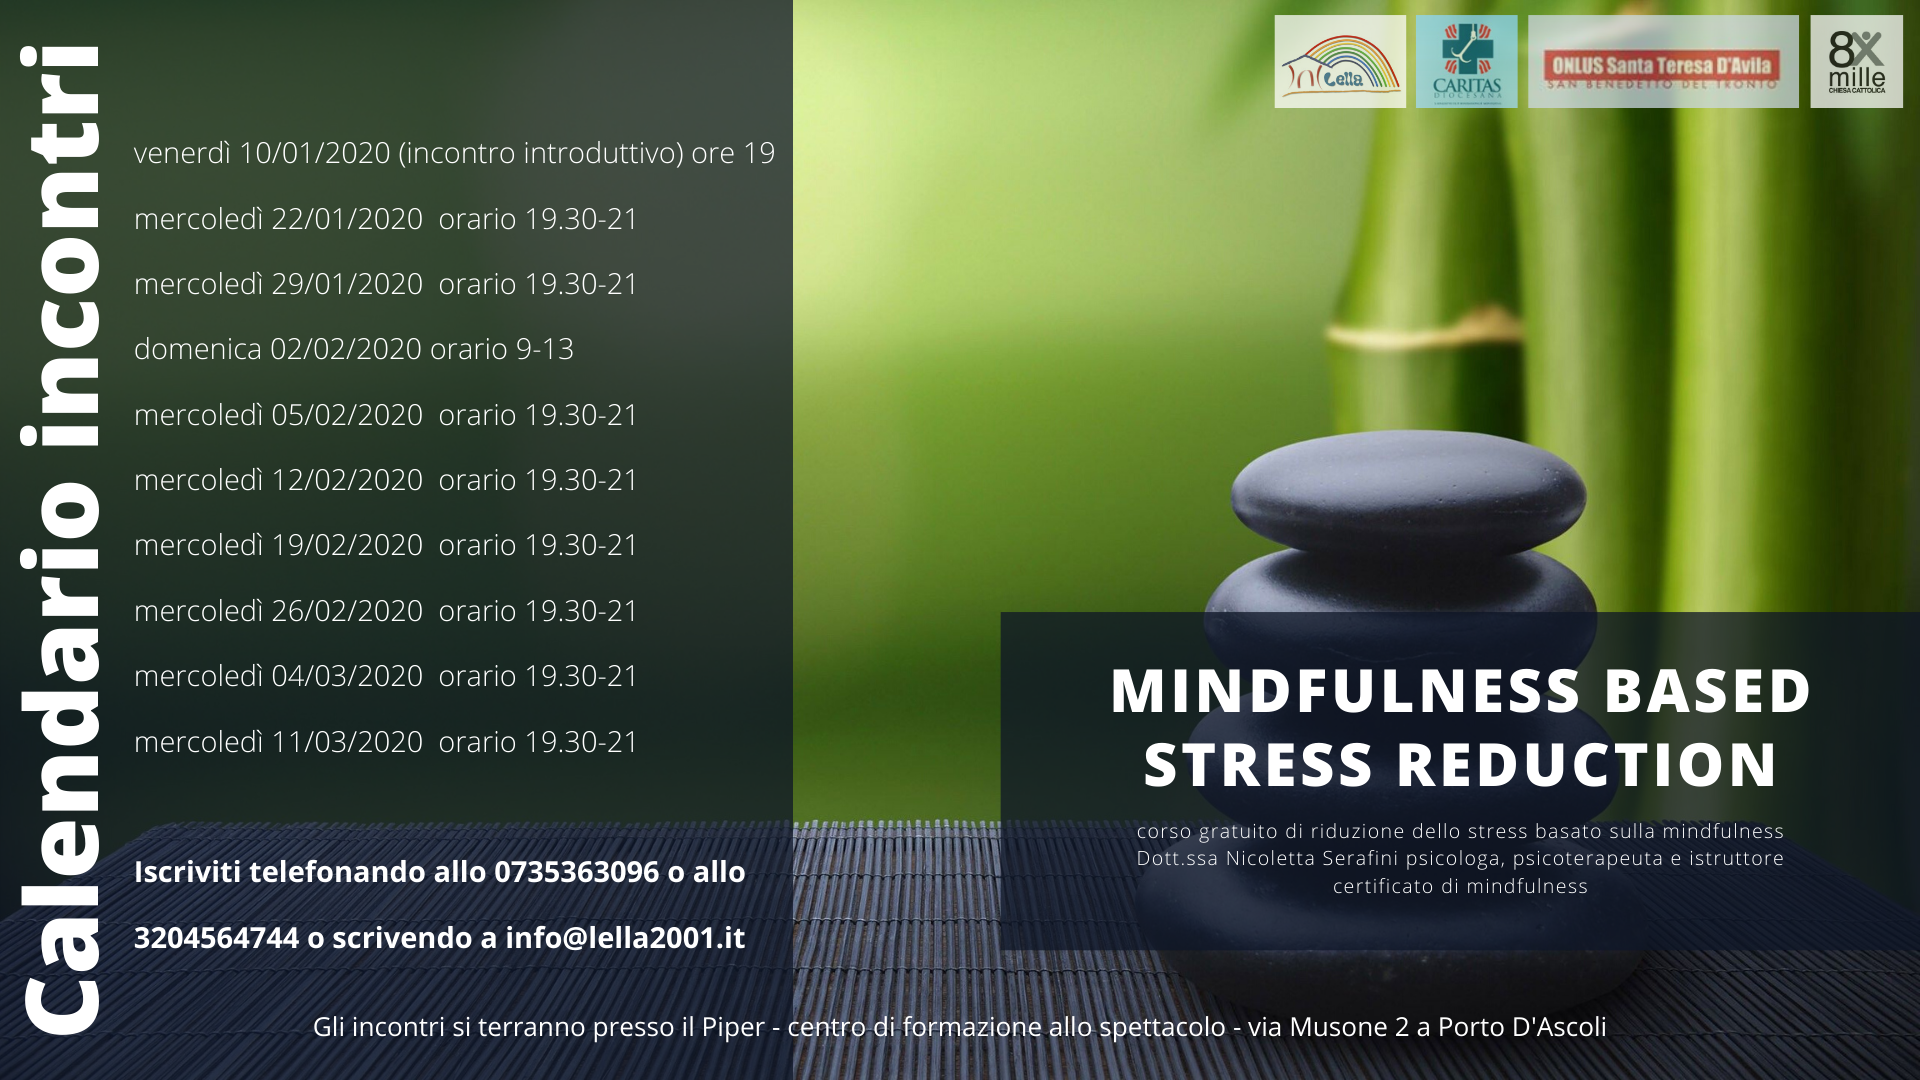 mindfulness based stress reduction volantino